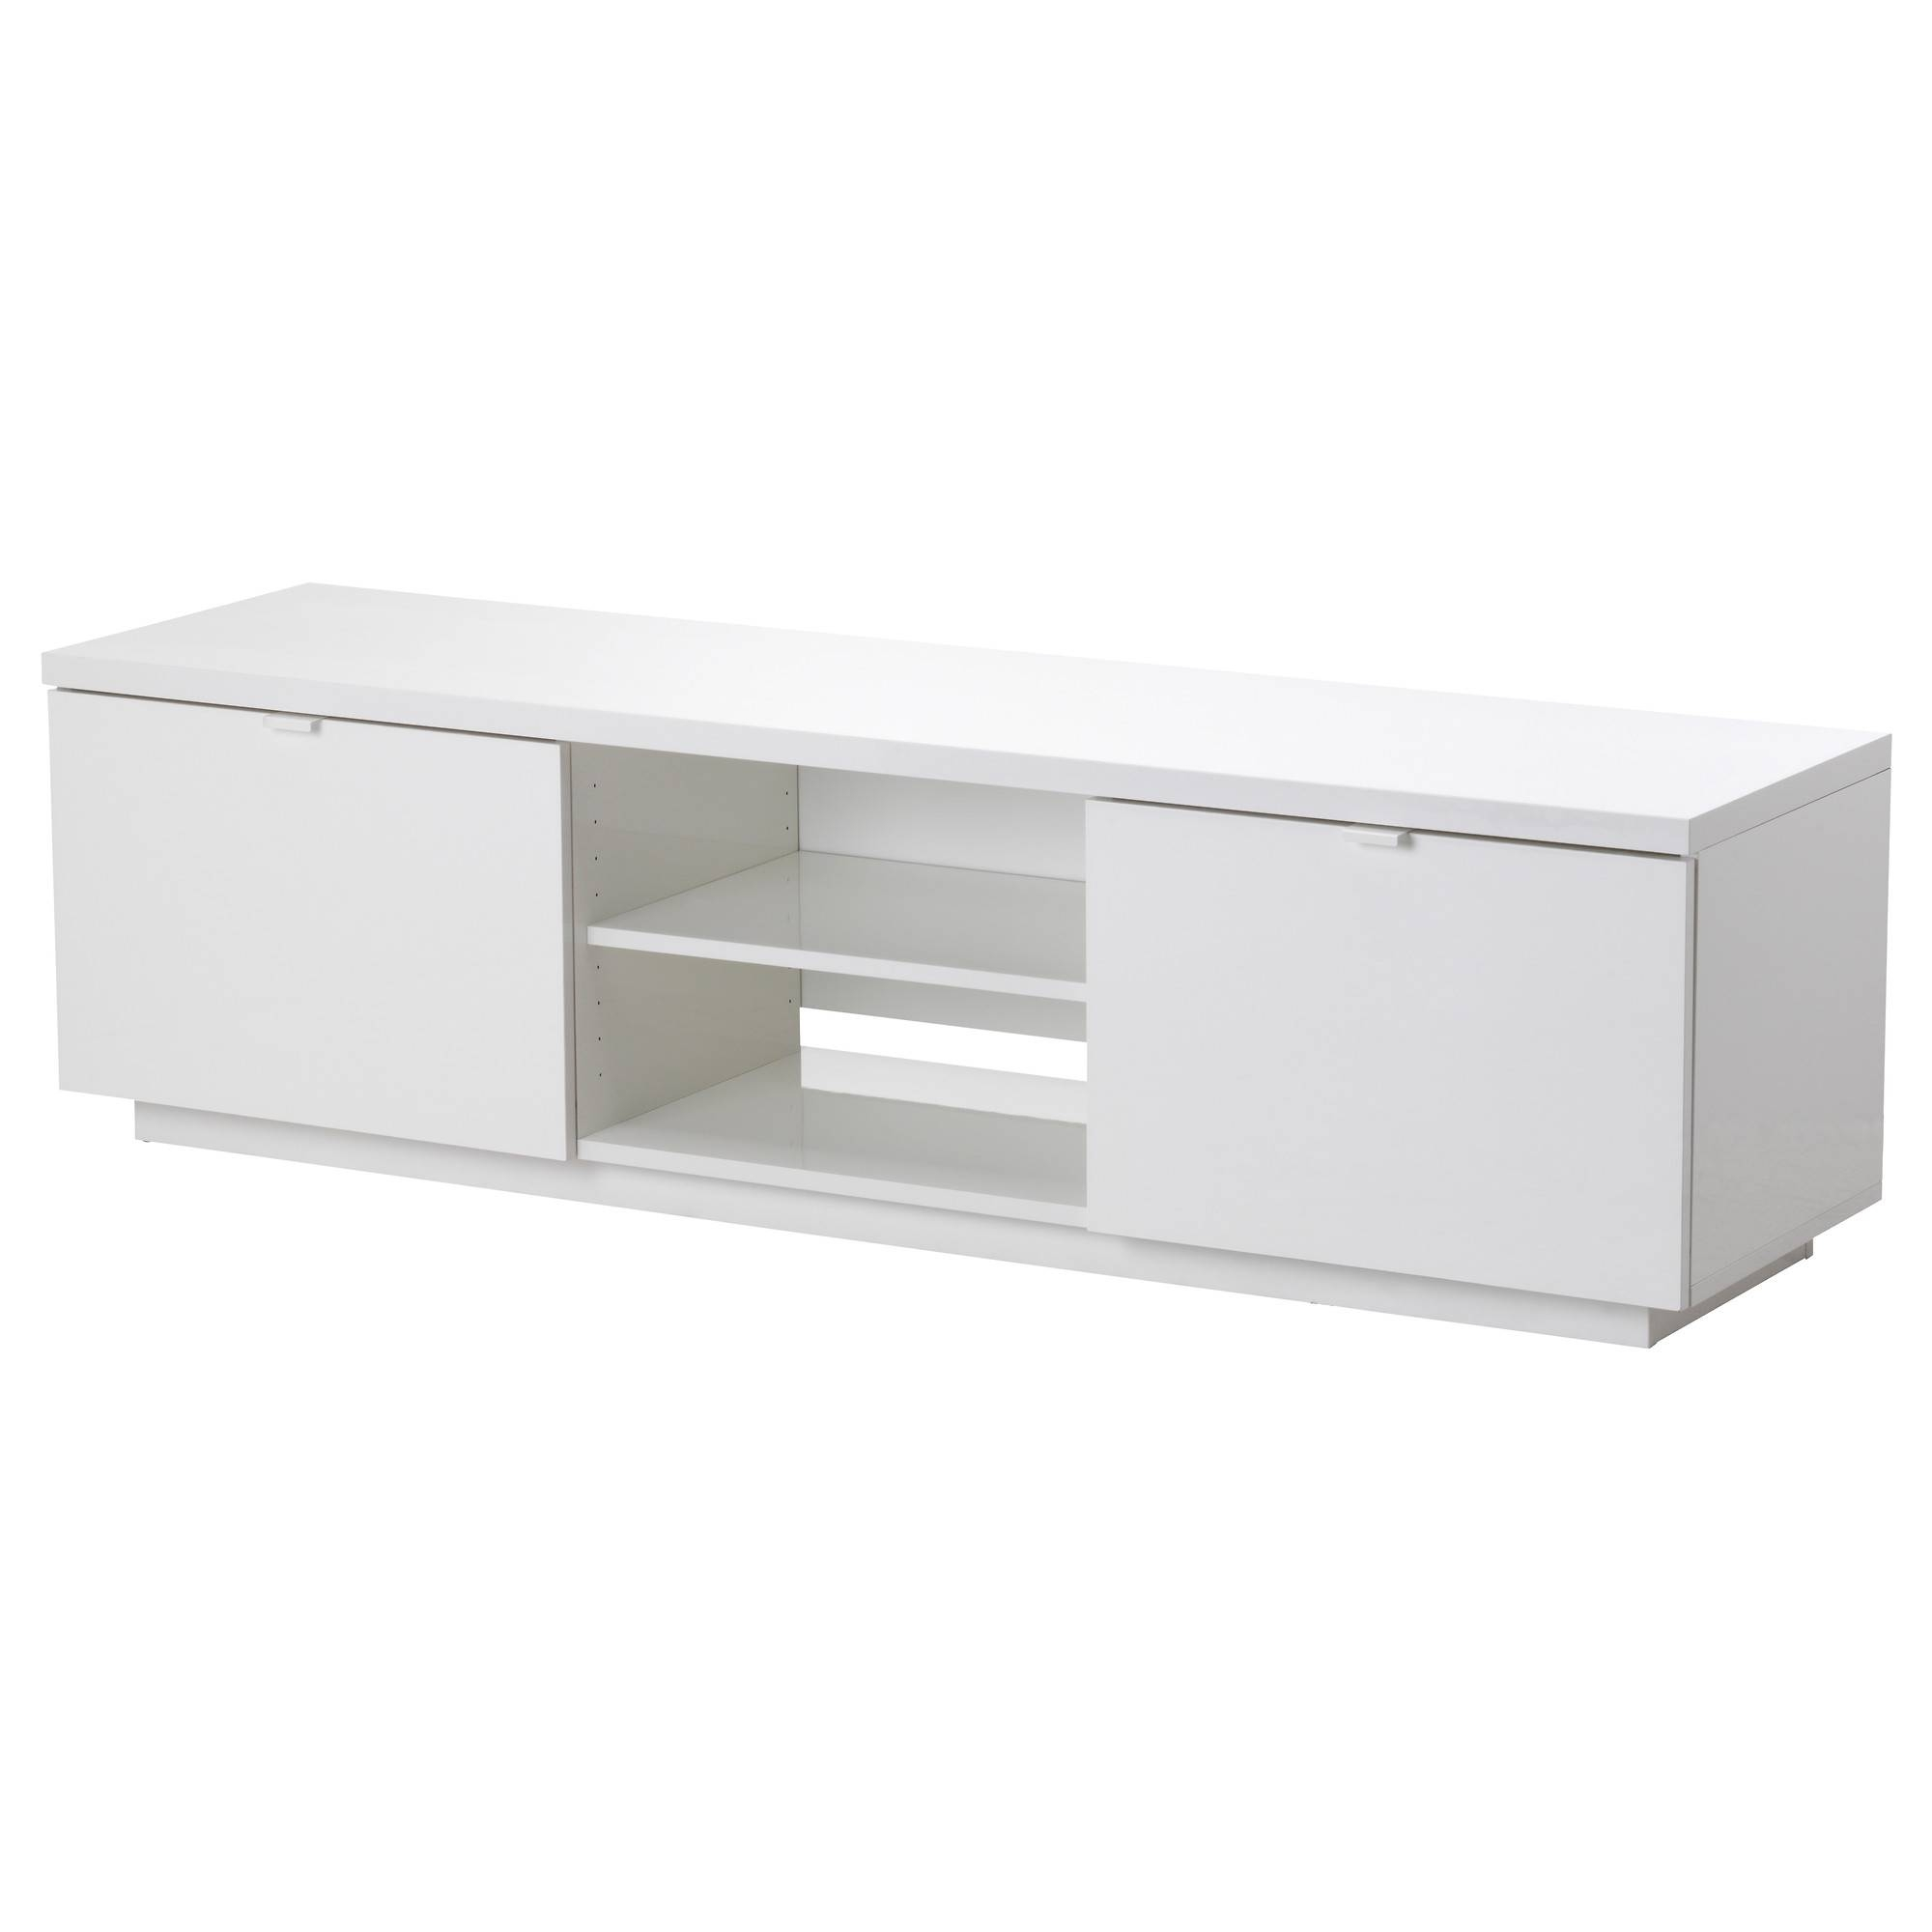 Byås Tv Unit - Ikea inside Long White Tv Cabinets (Image 7 of 15)